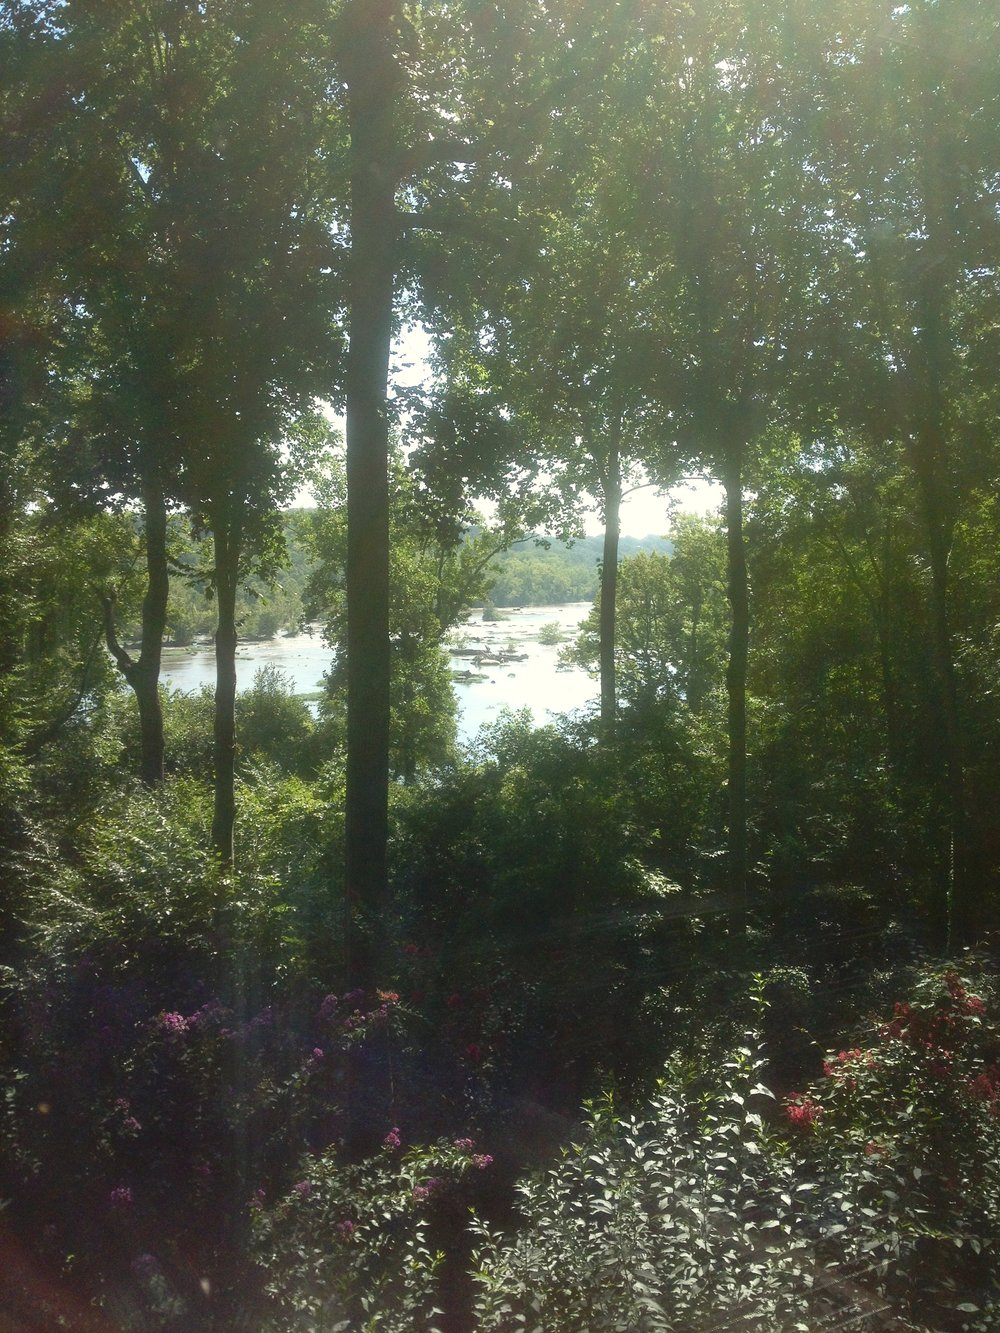 View of the James River